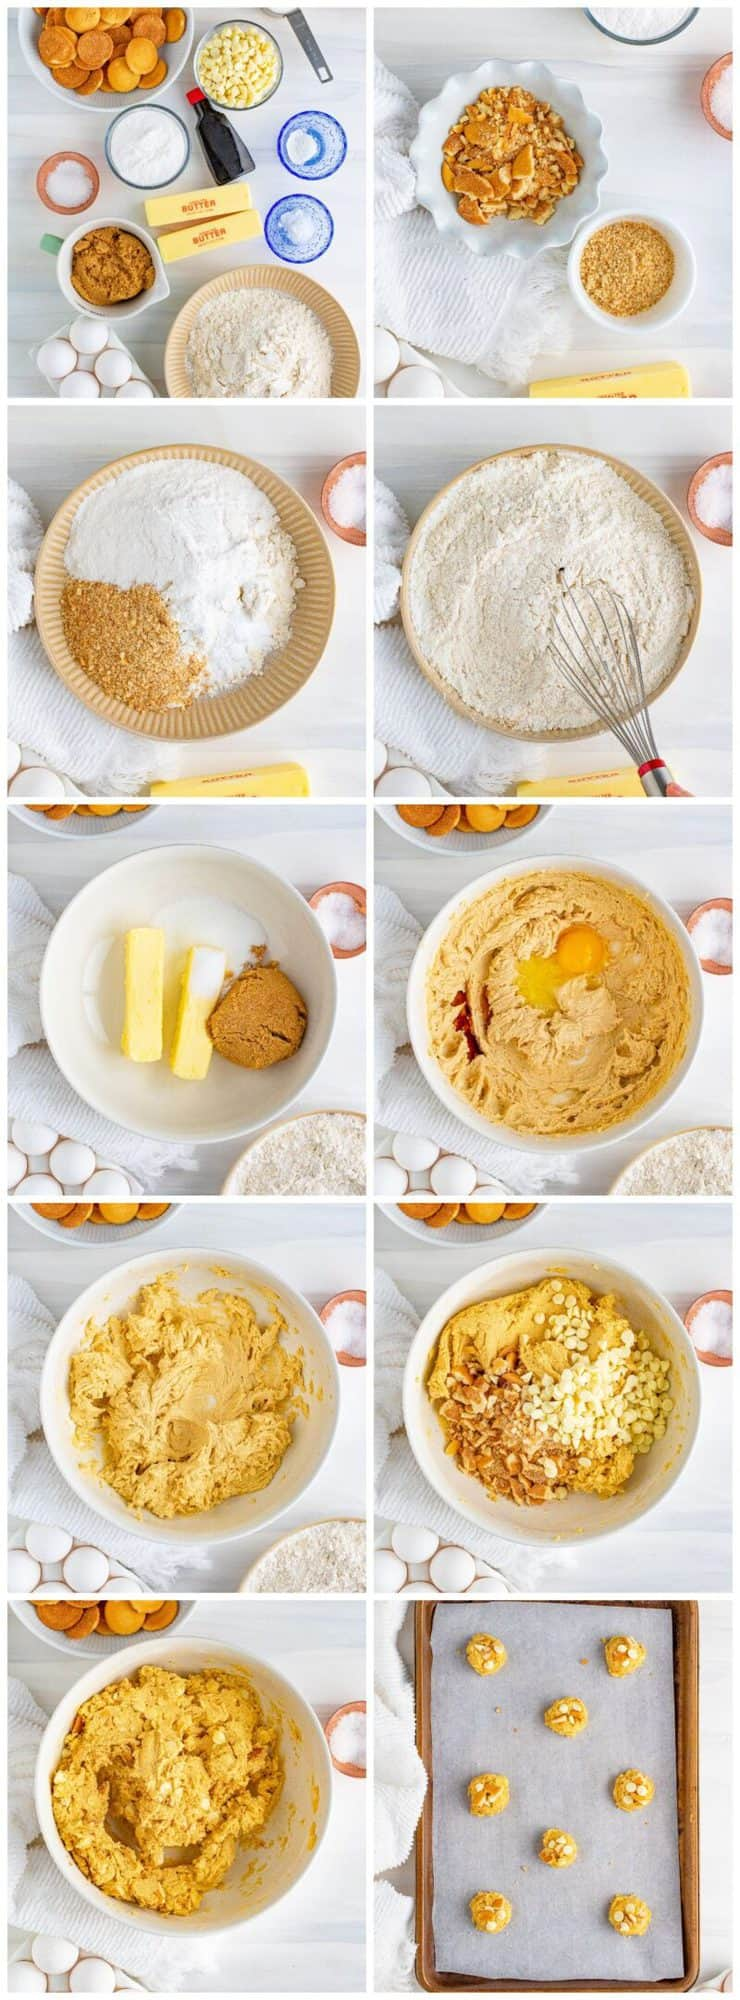 step by step photos for how to make banana pudding cookies